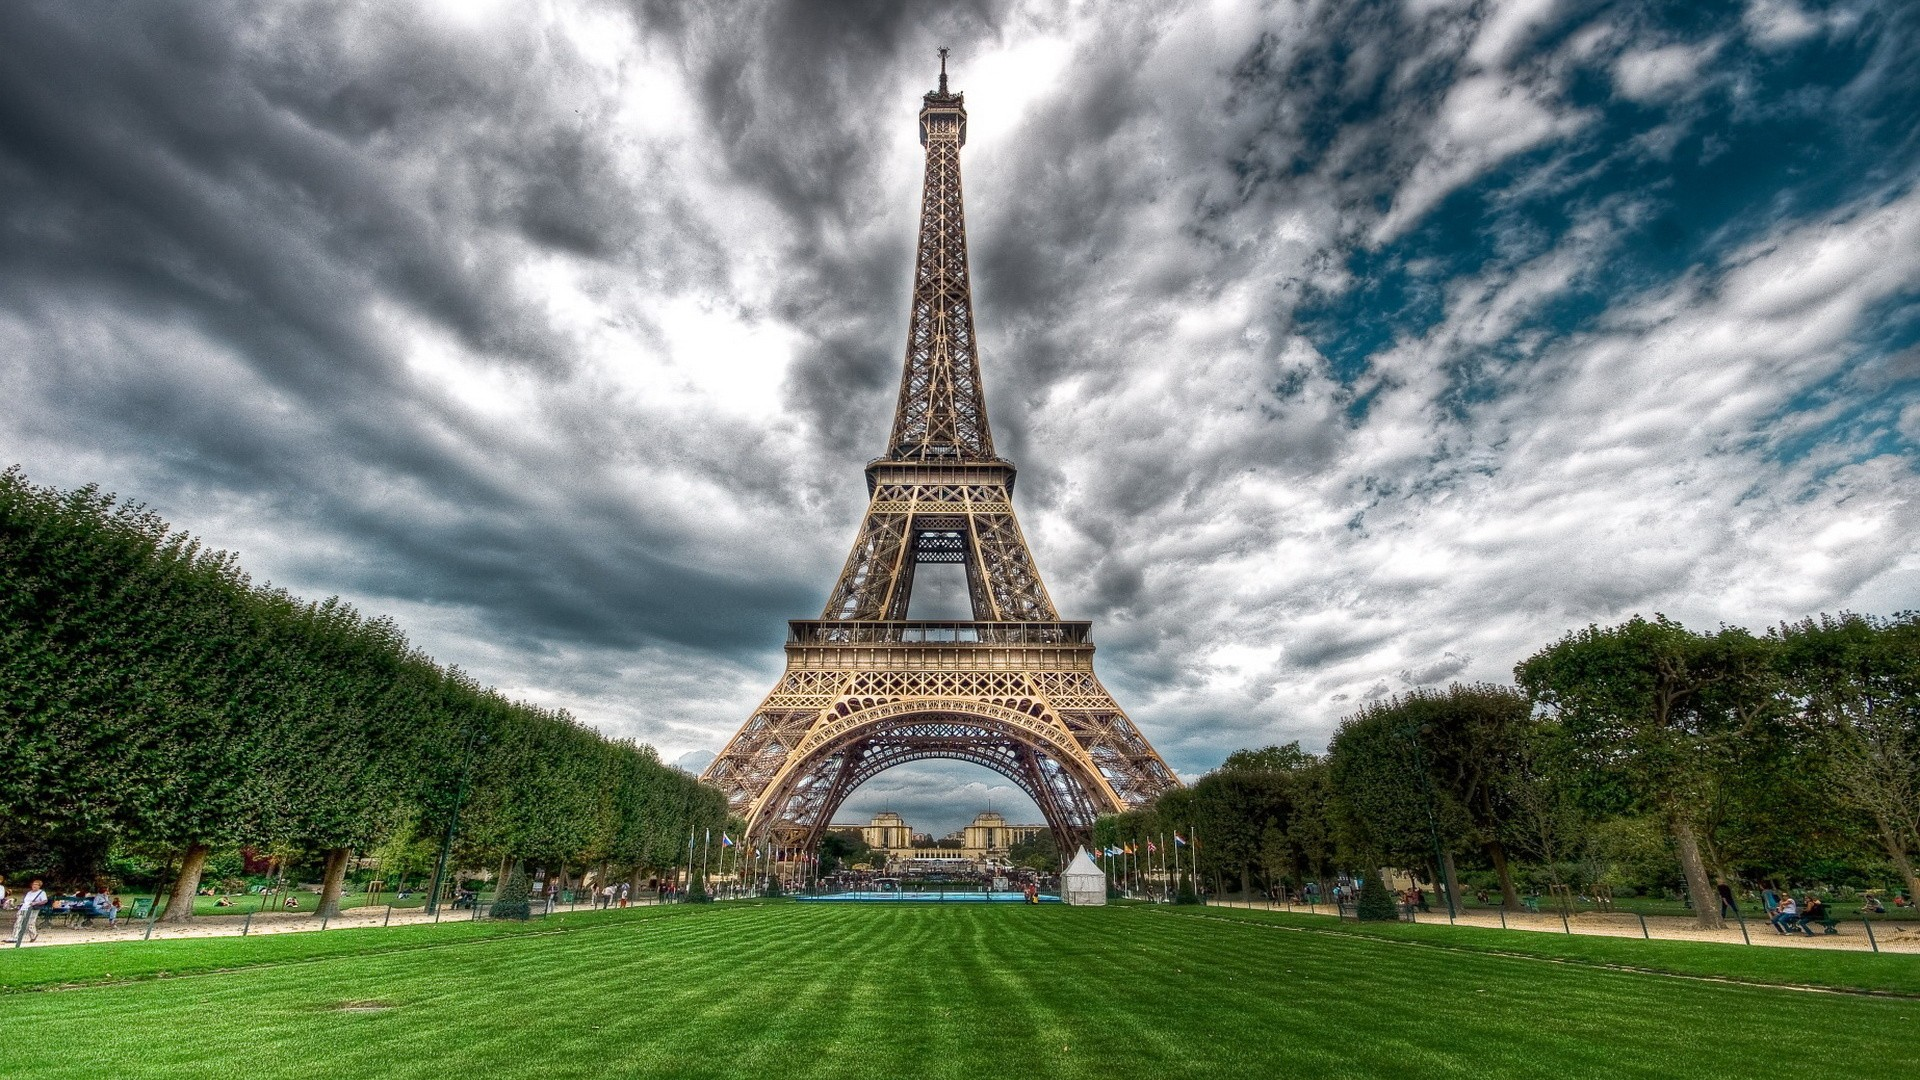 eiffel tower wallpapers best wallpapers. Black Bedroom Furniture Sets. Home Design Ideas